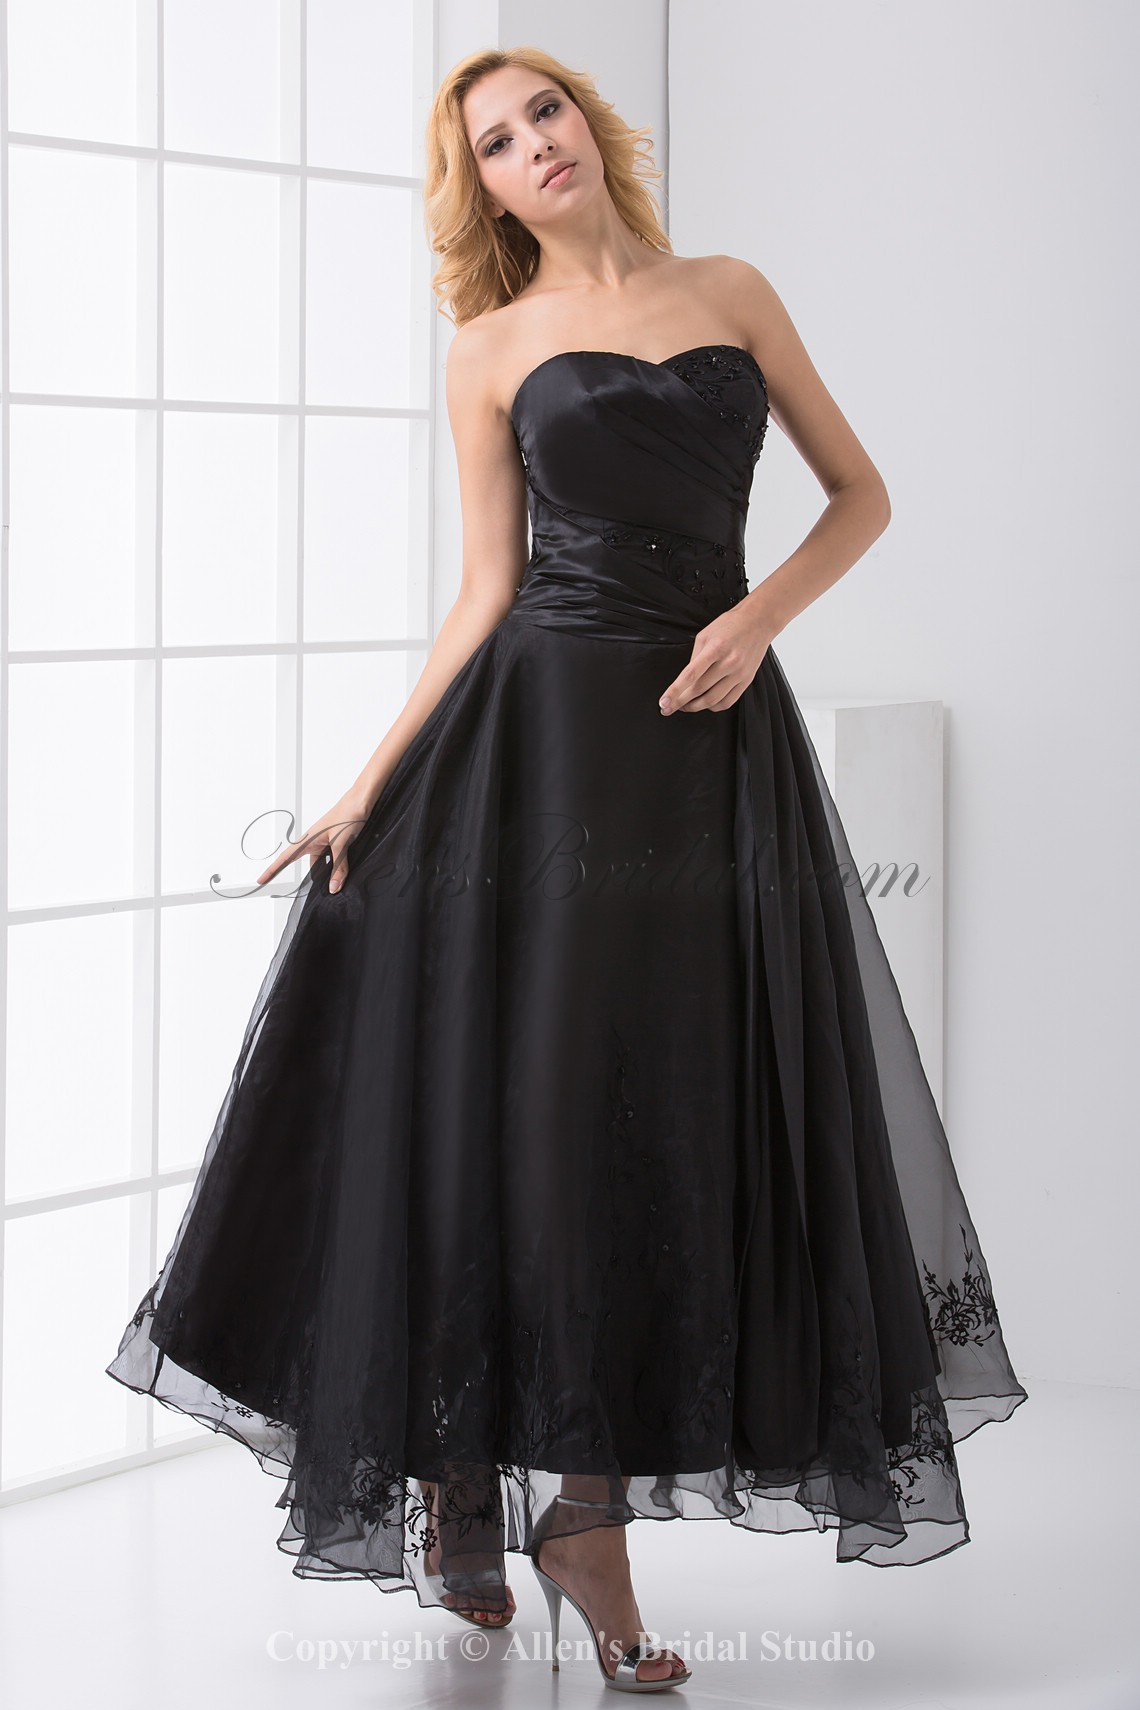 /177-1413/organza-sweetheart-a-line-ankle-length-embroidered-prom-dress.jpg